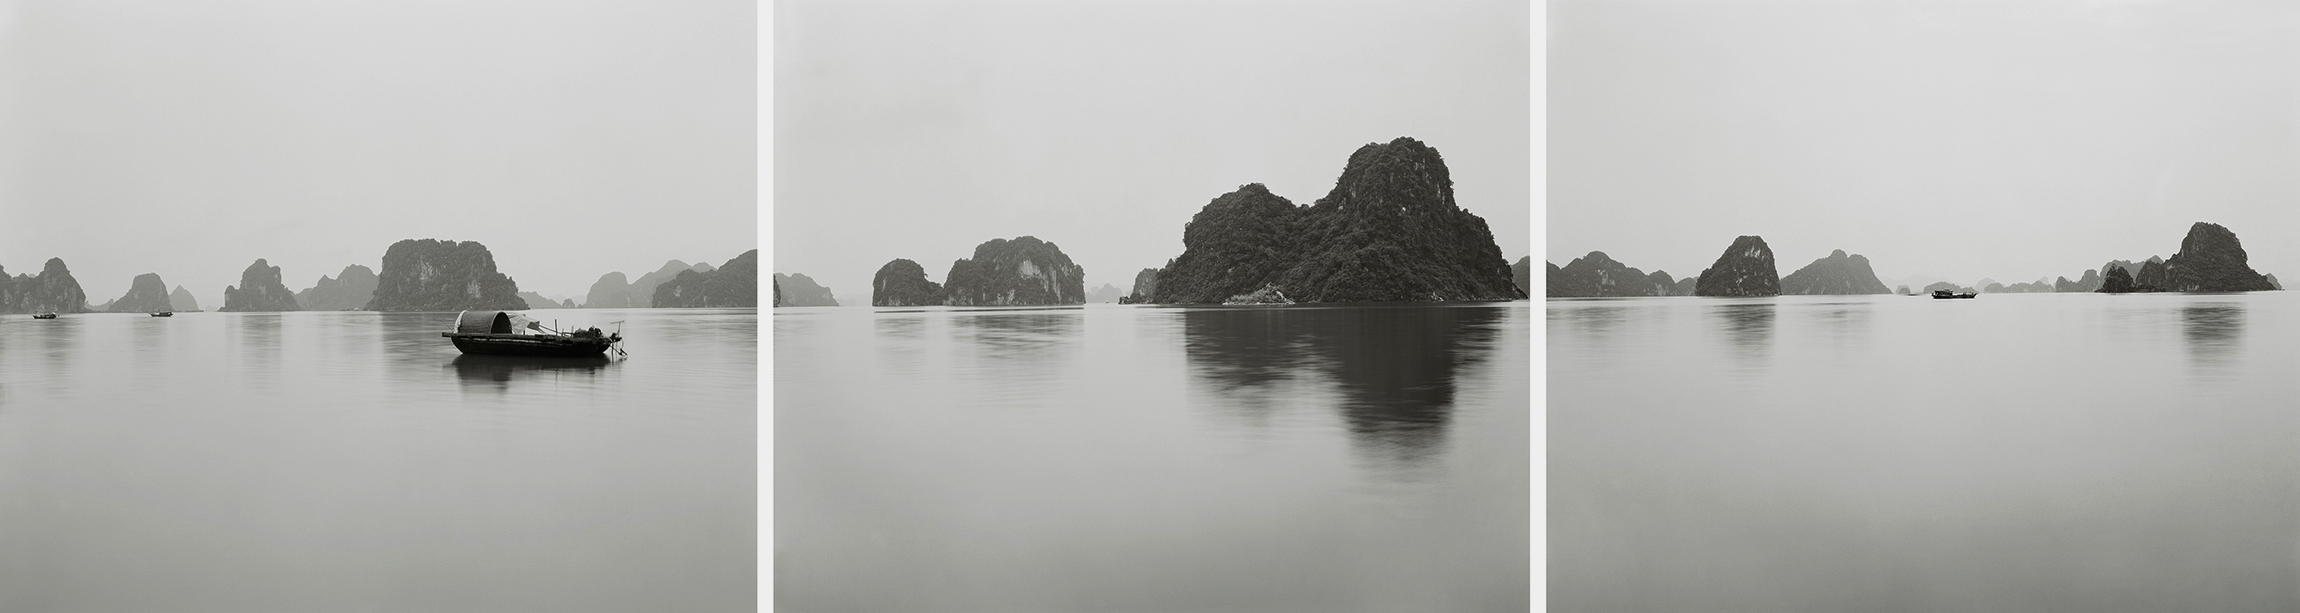 Four-Boats-and-Islands-Ha-Long-Bay---2002.jpg